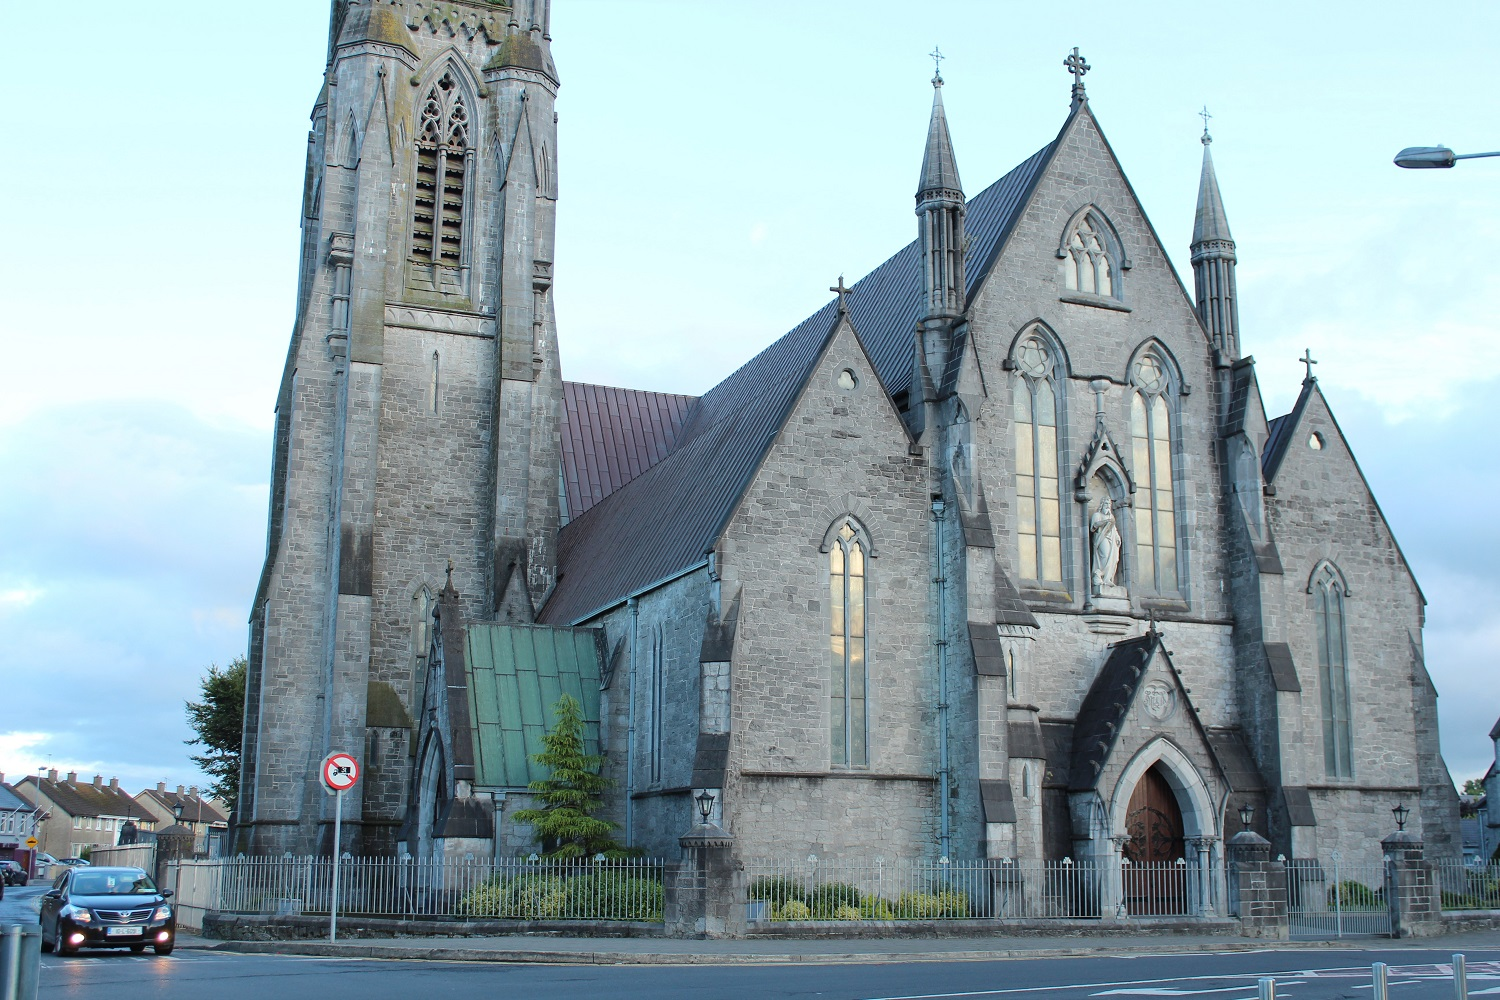 St. Johns Cathedral in Limerick